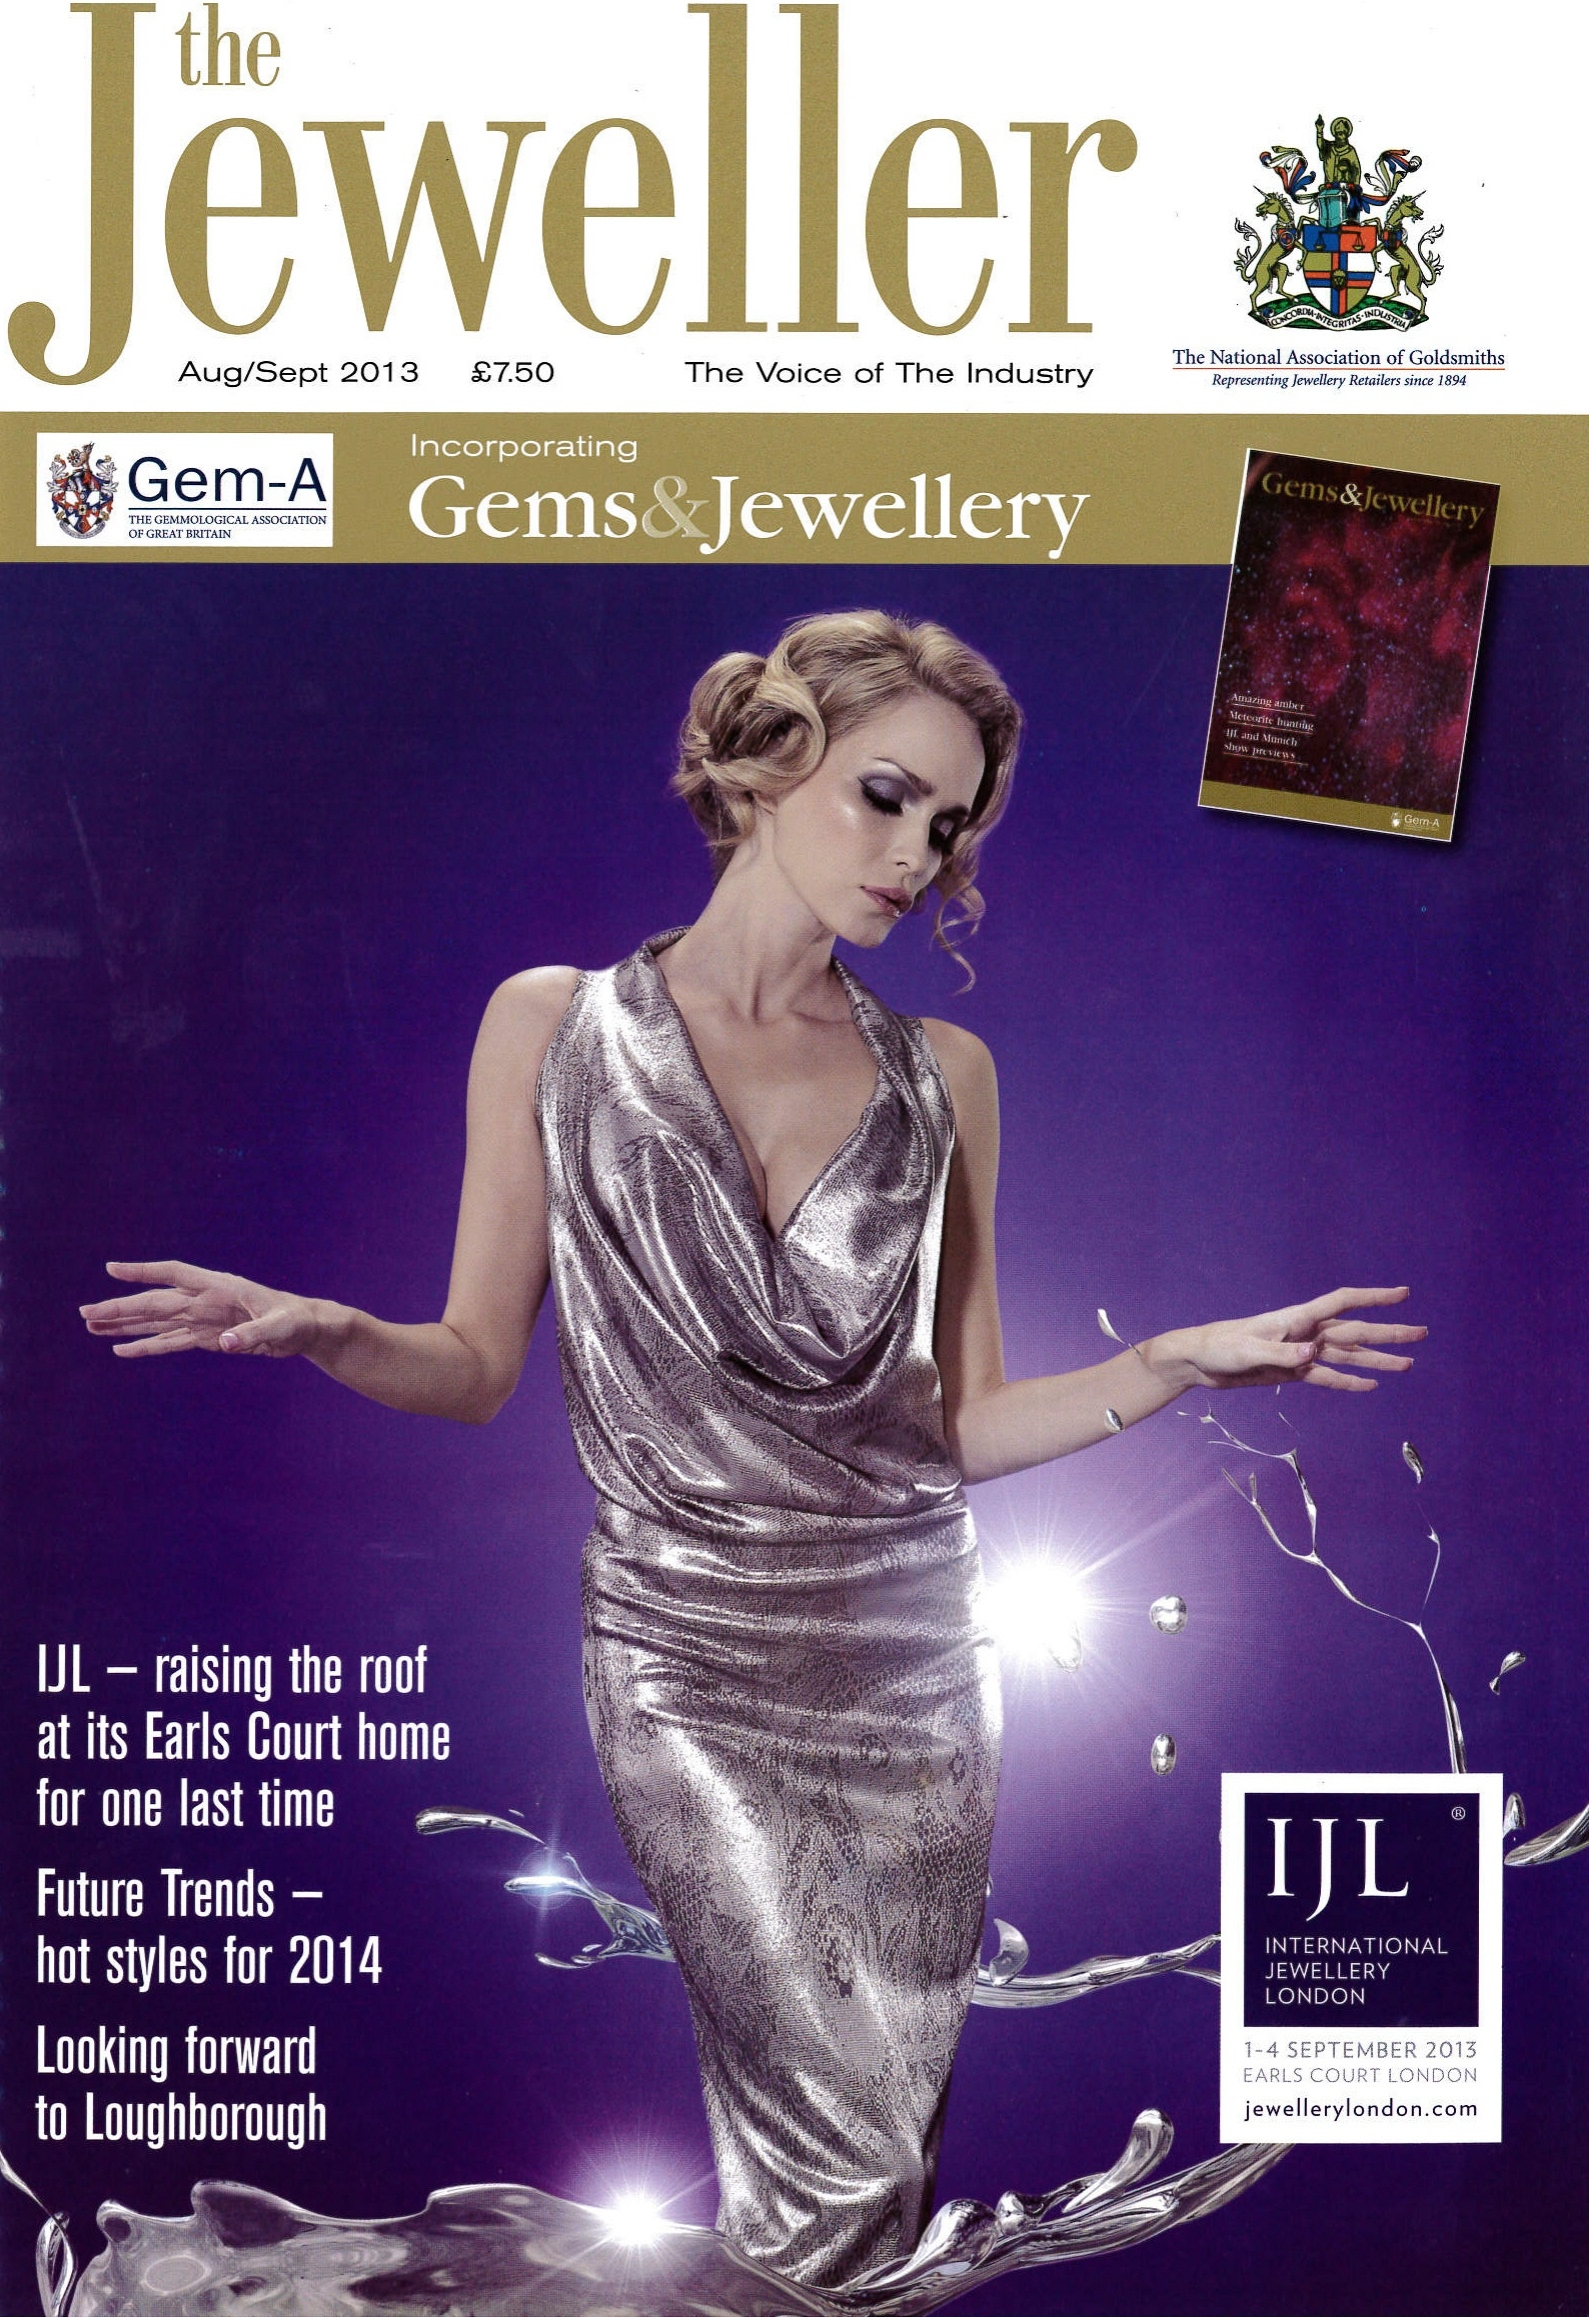 The Jeweller September 2013 (click to view)